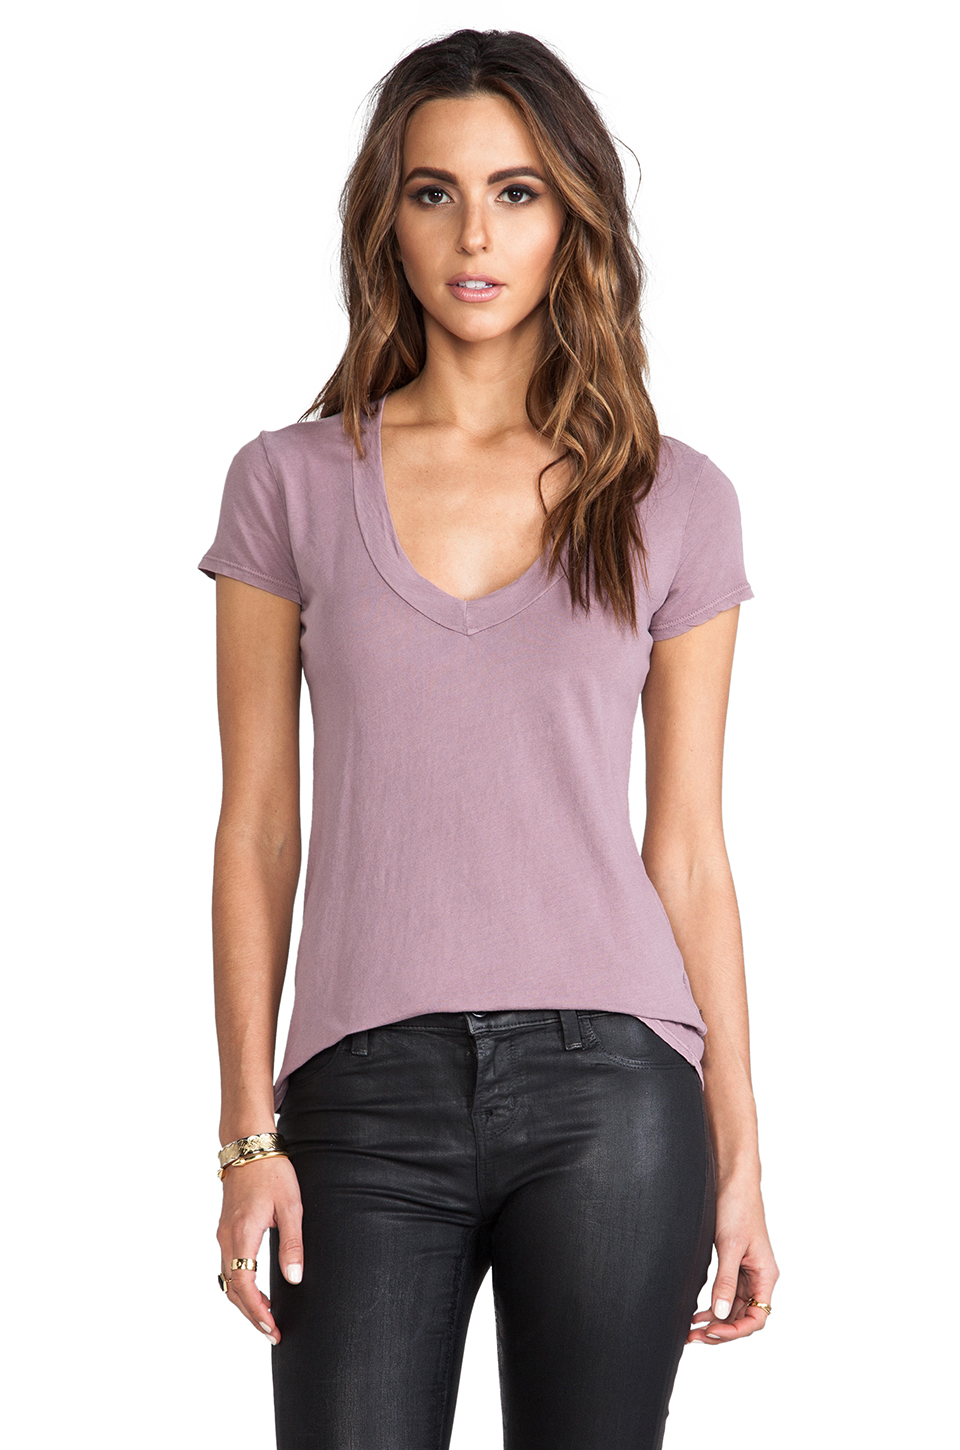 James Perse Short Sleeve V Neck in Mauve